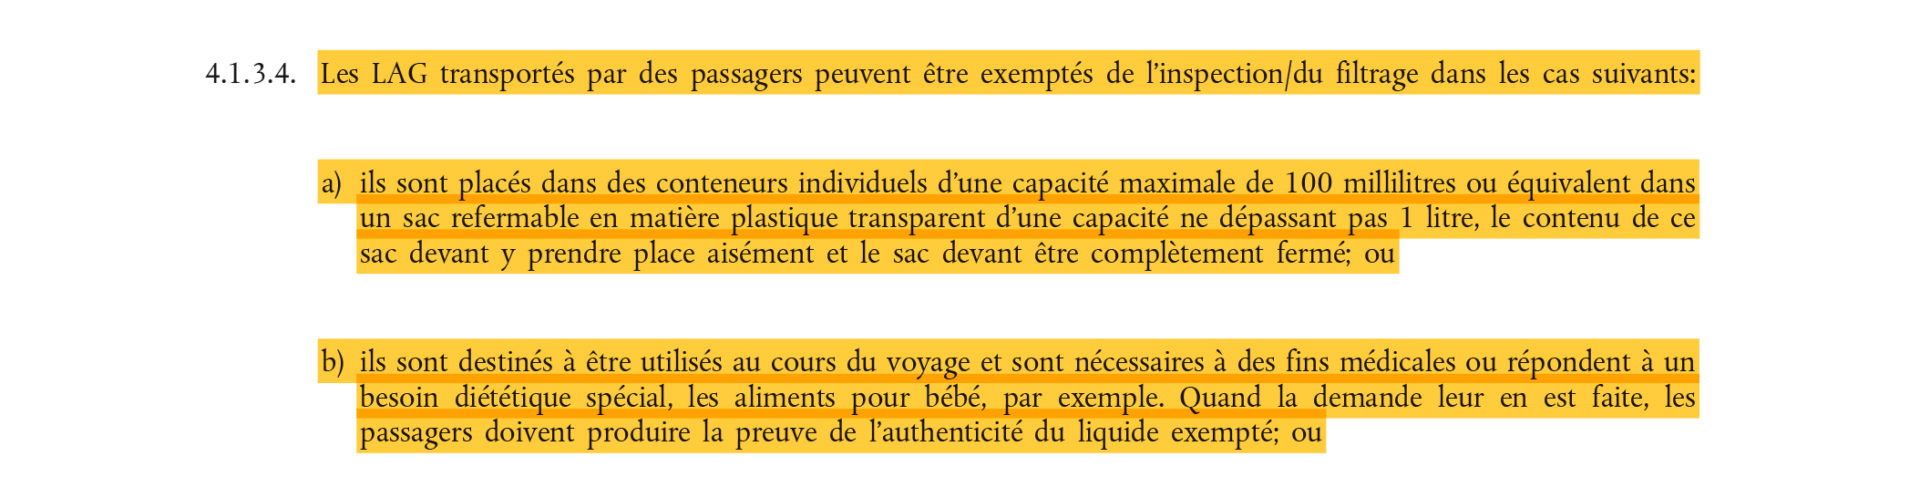 journal officiel reglementation aerienne extrait zoom page 14